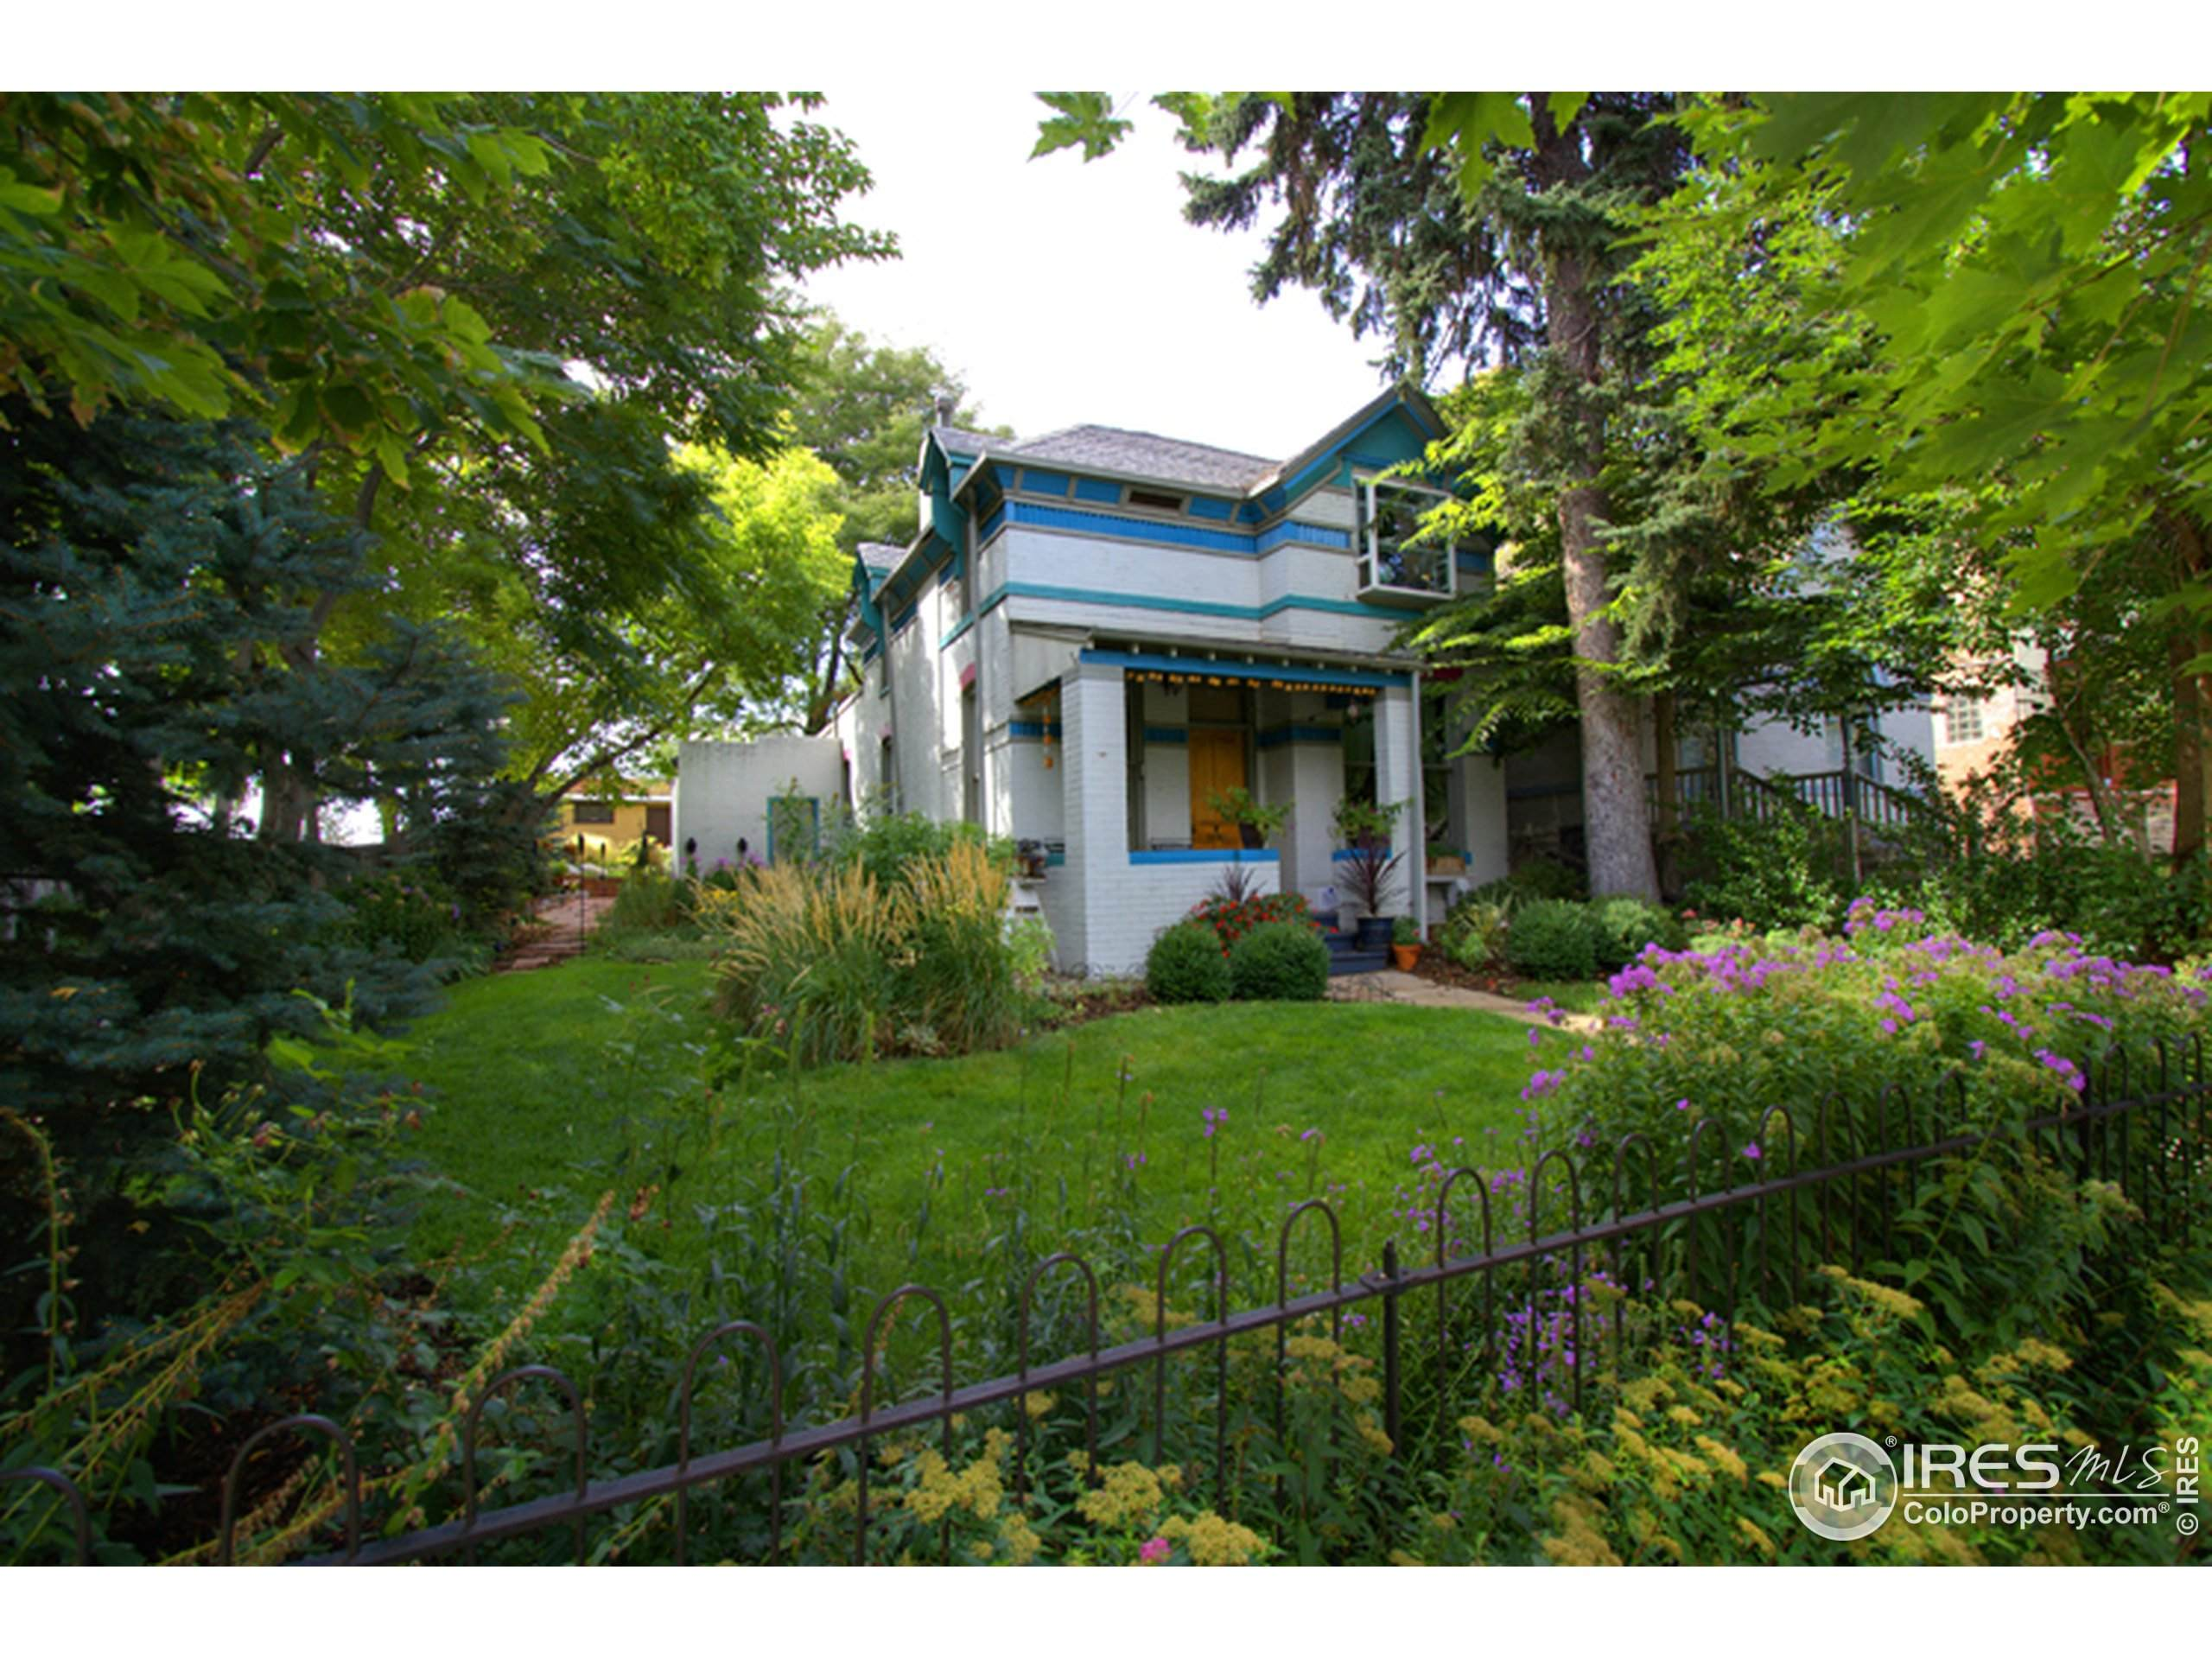 4198 W 99th Ct, Westminster, CO 80031 (MLS #921033) :: Wheelhouse Realty